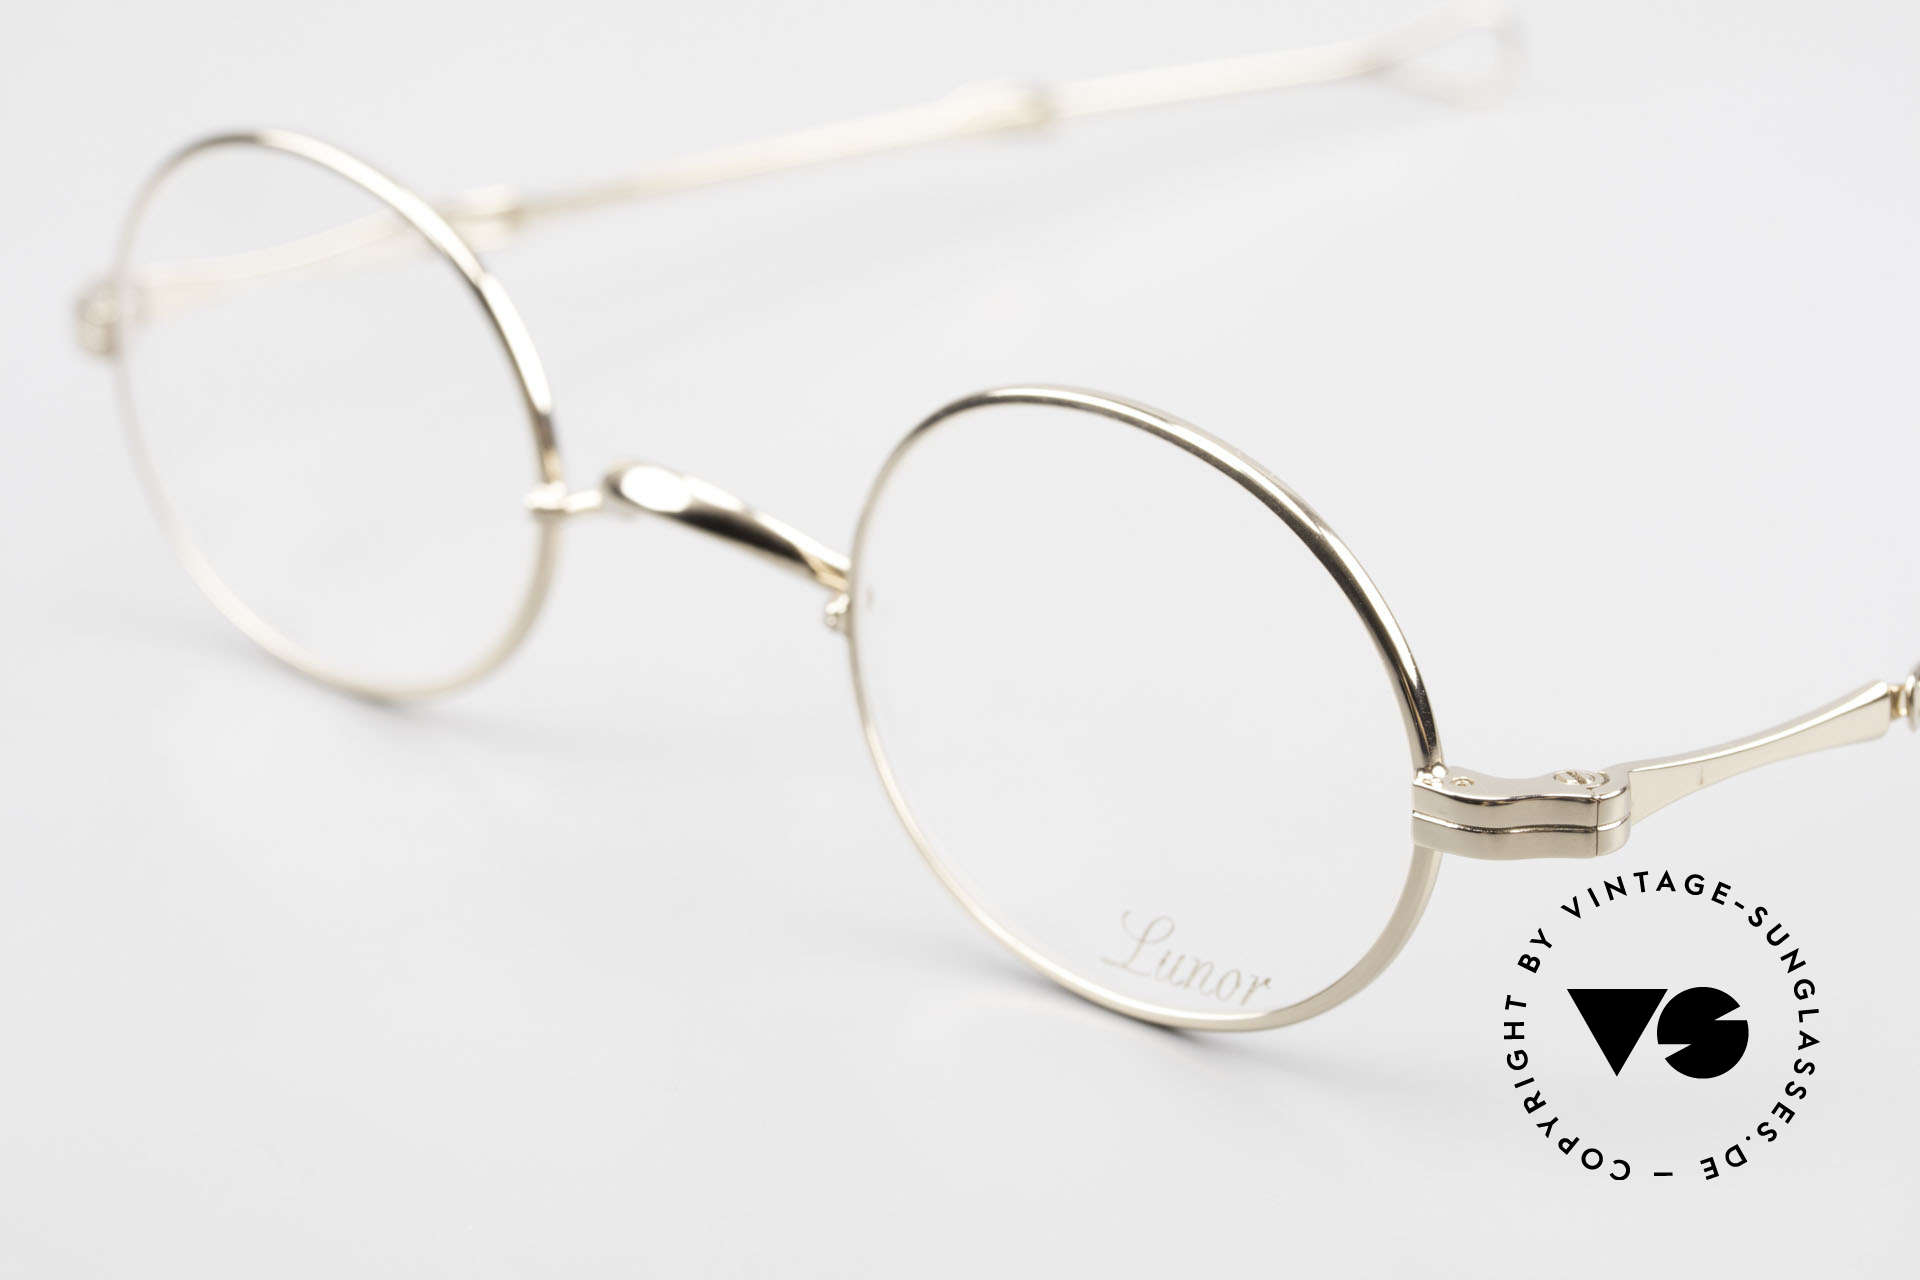 Lunor I 10 Telescopic Lunor Glasses Oval Slide Temple, well-known for the brilliant telescopic / extendable arms, Made for Men and Women